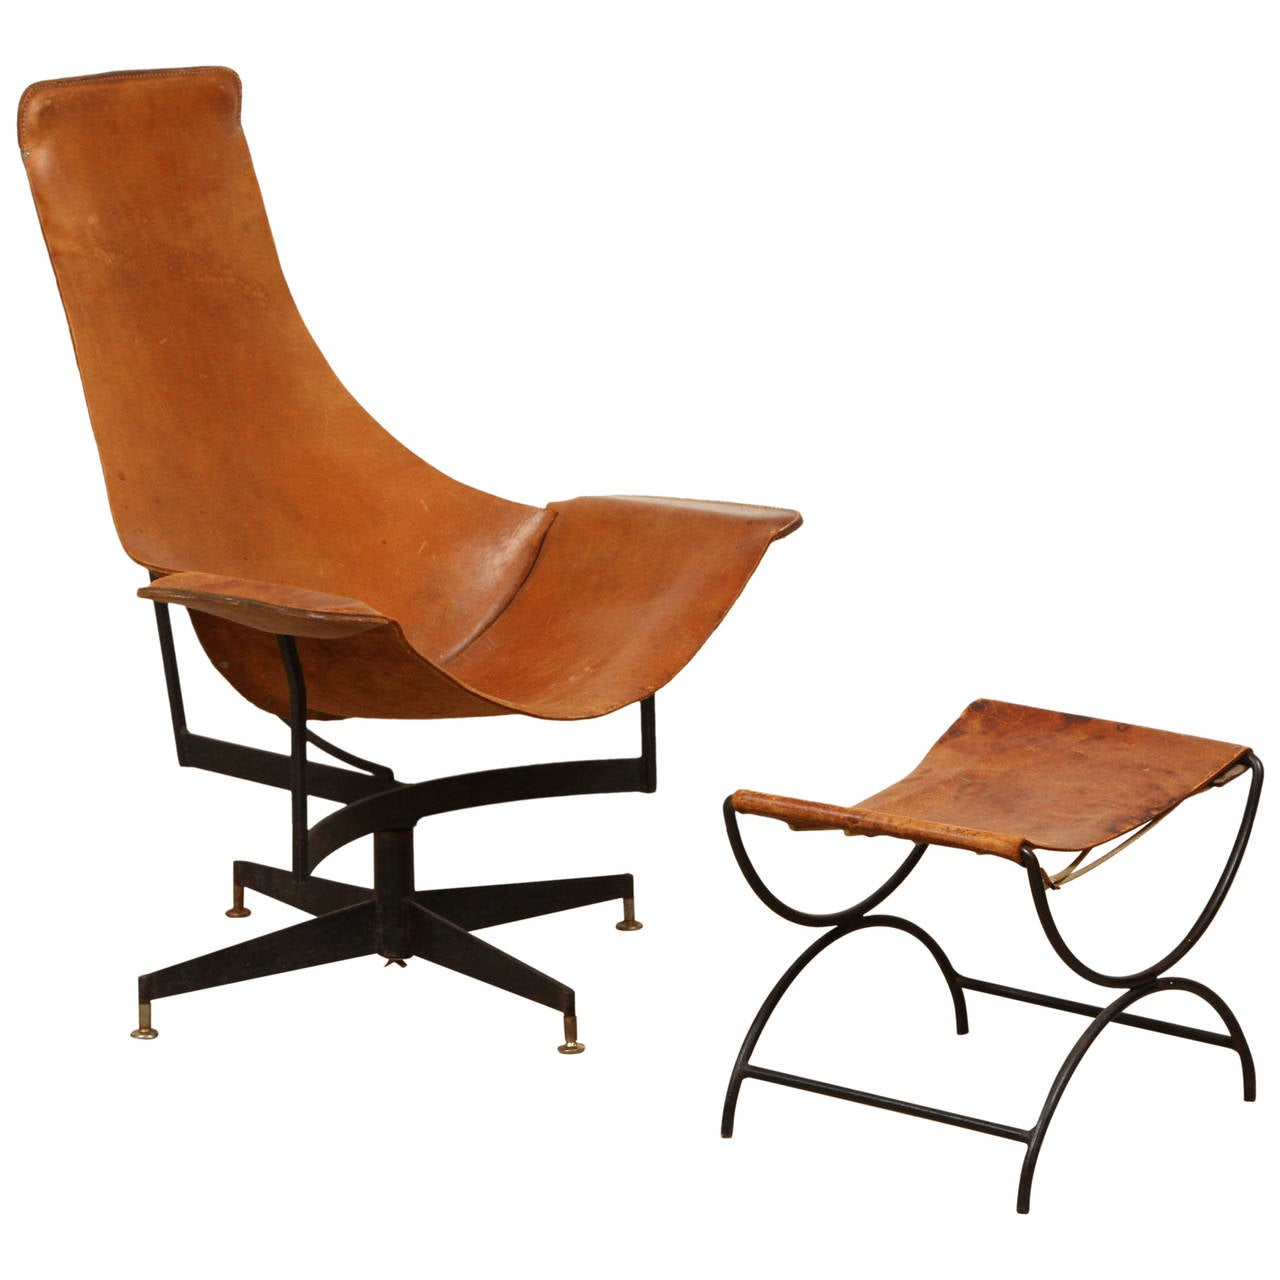 swivel chair and ottoman with pad leather by max gottschalk at 1stdibs